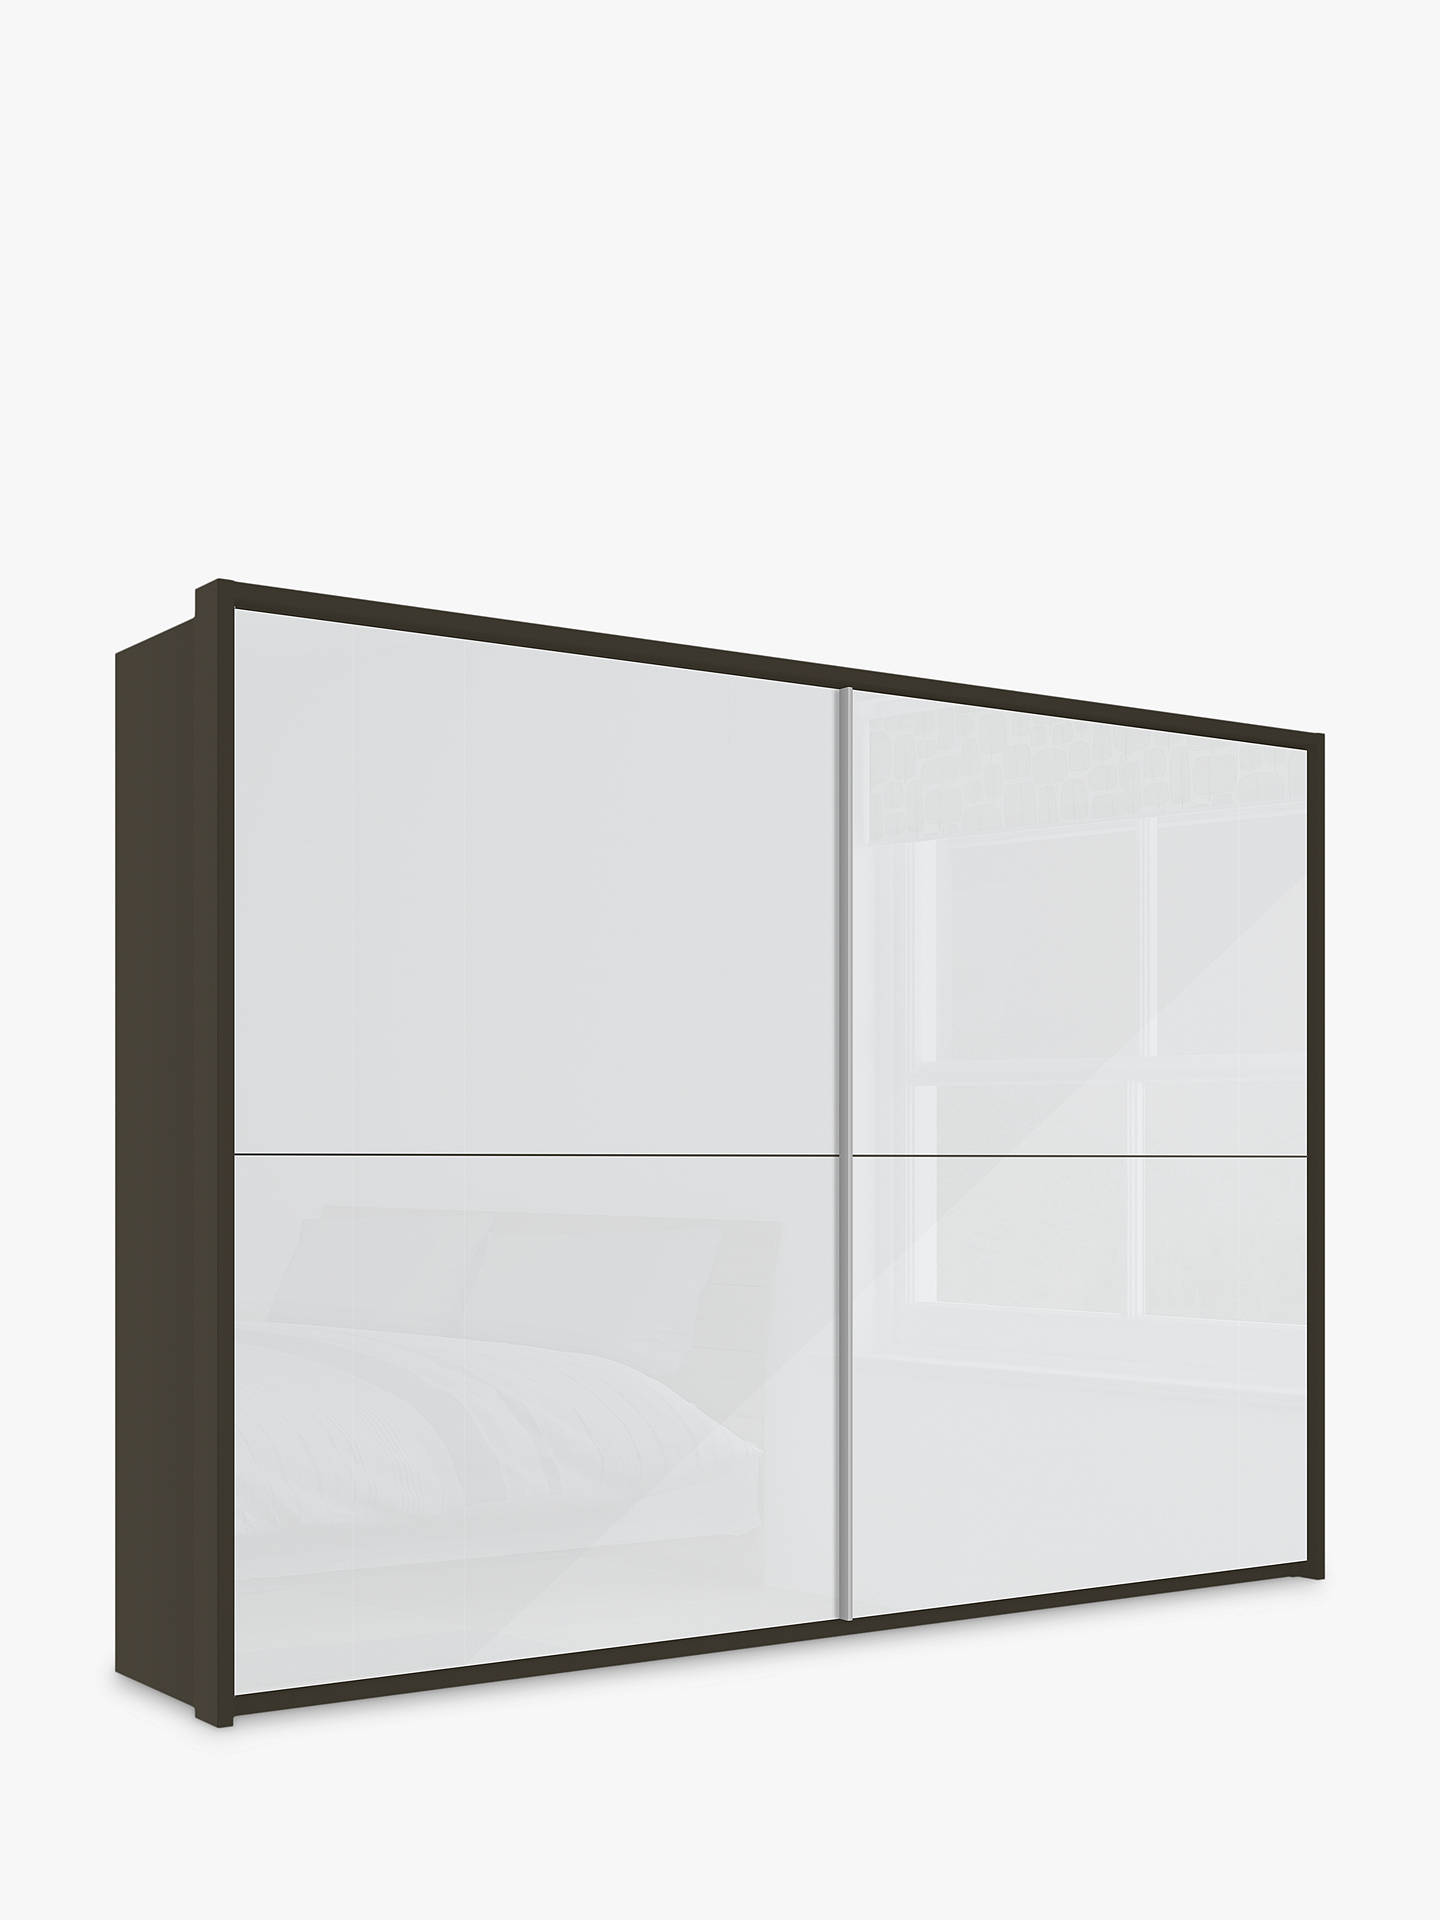 BuyJohn Lewis & Partners Girona 300cm Wardrobe With Glass Sliding Doors, White Glass/Havana Online at johnlewis.com